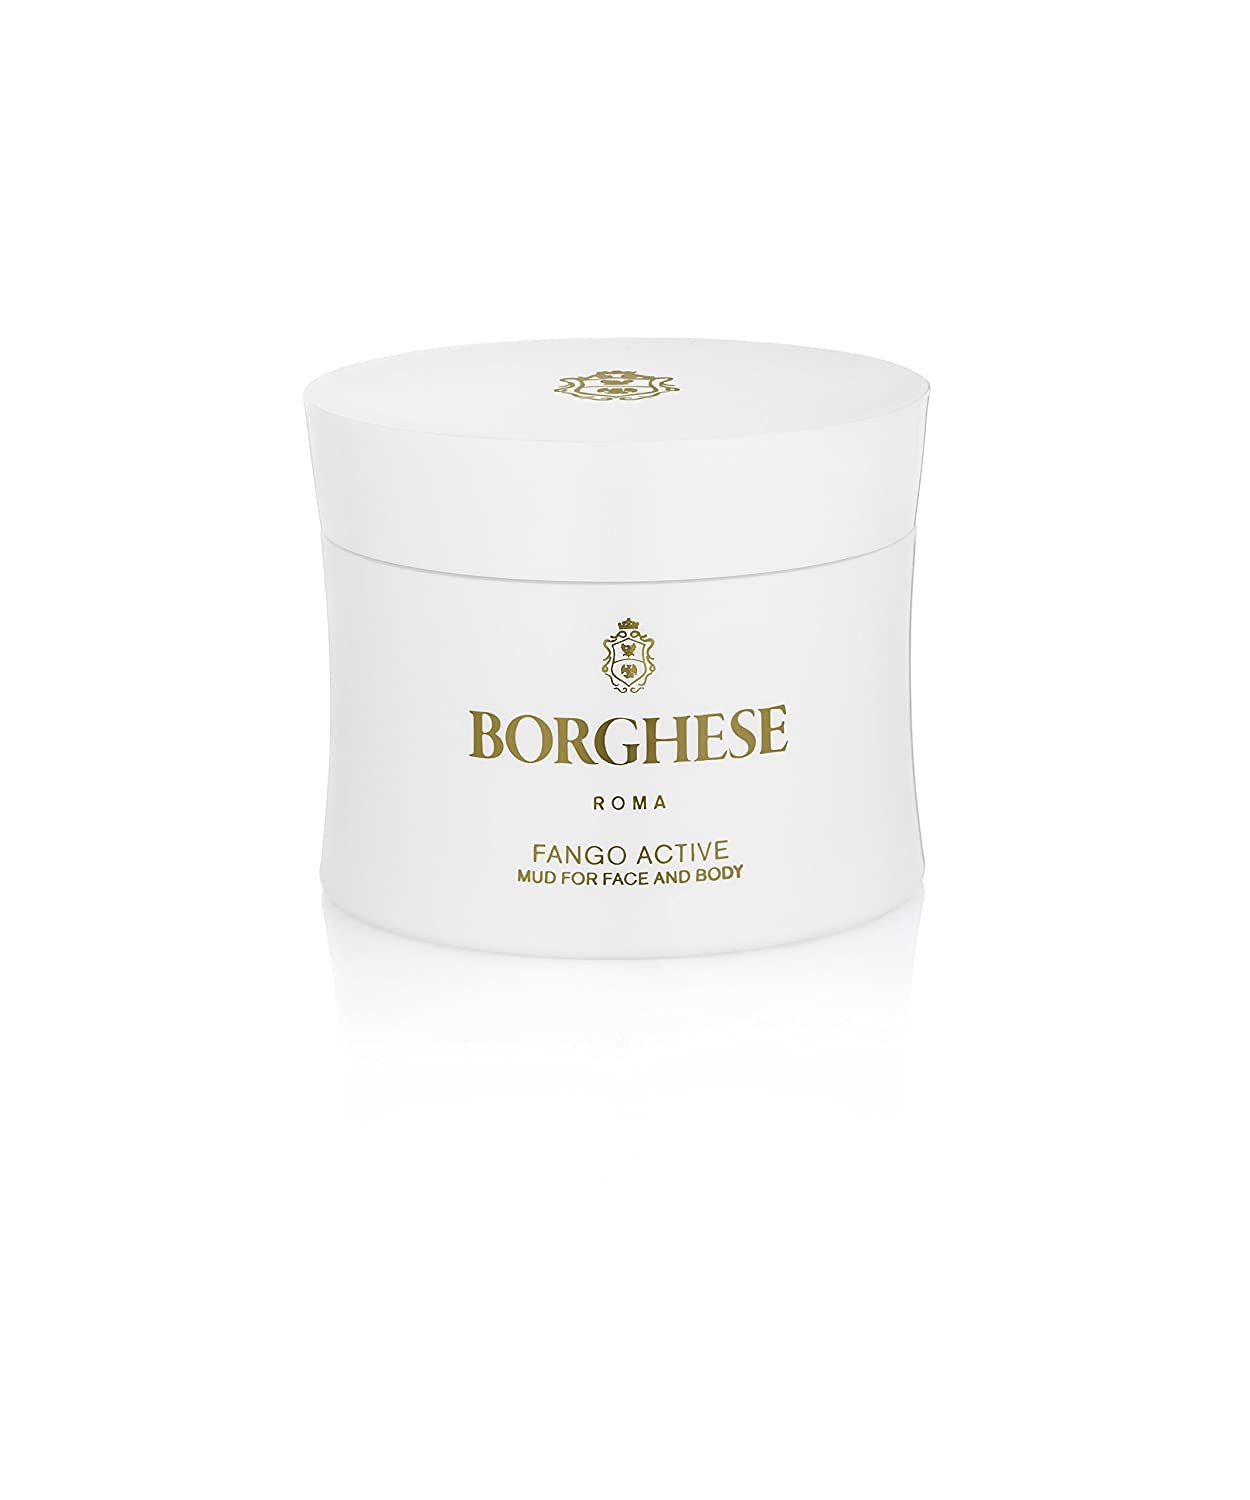 Borghese Fango Active Mud for Face and Body: Premium Beauty